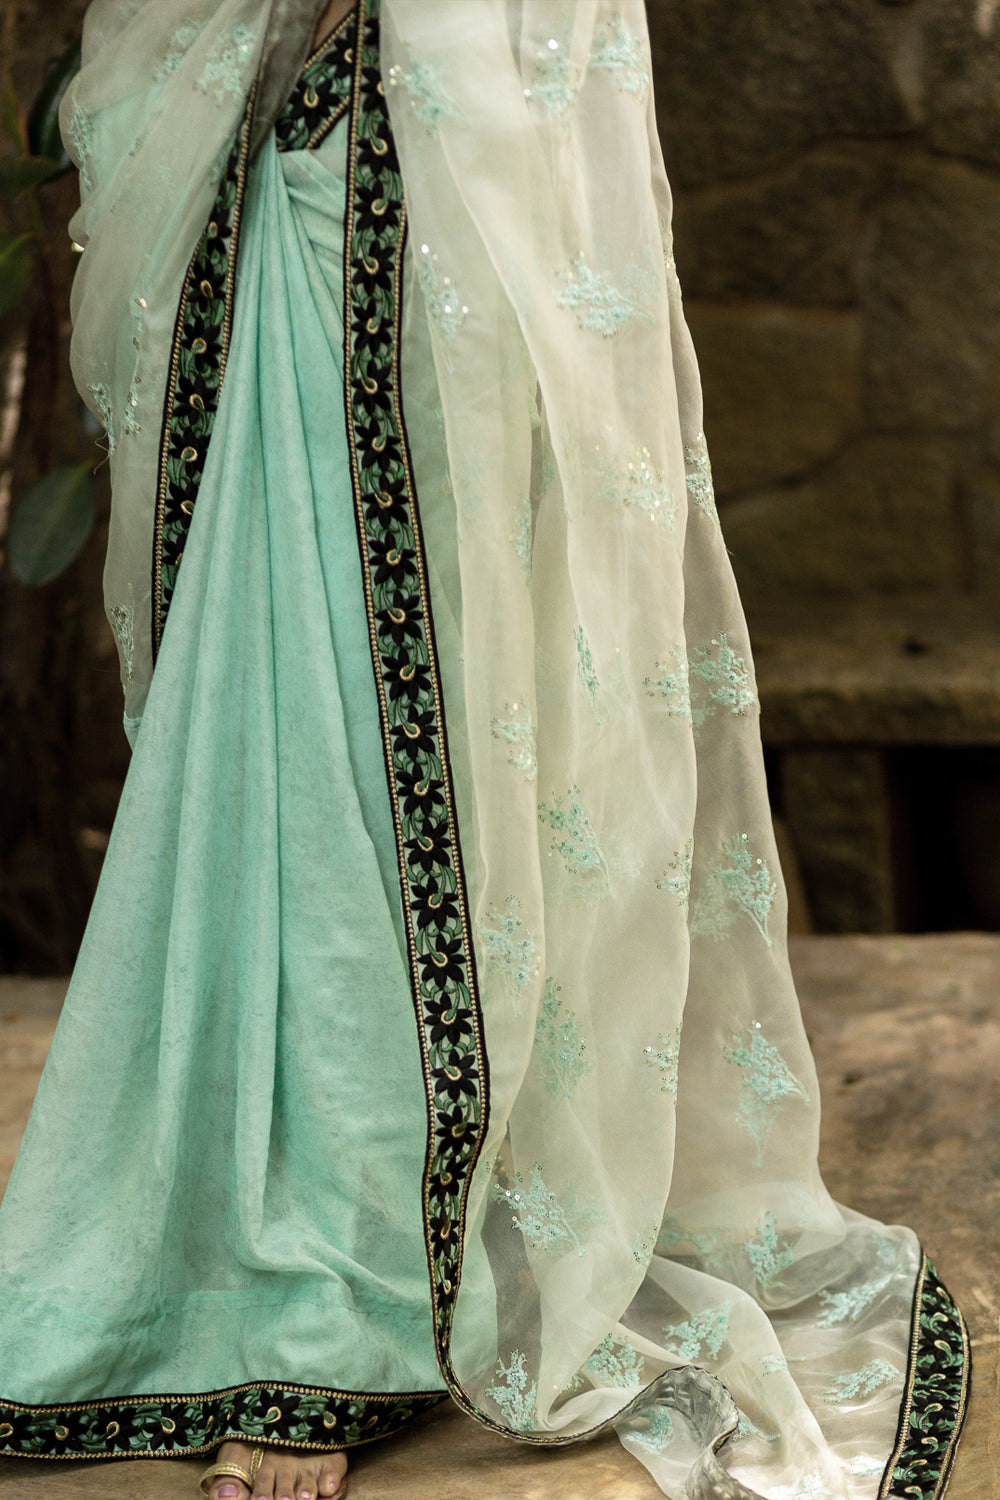 Sea green embroidered organza and shimmer georgette half and half saree with black floral border - House of Blouse